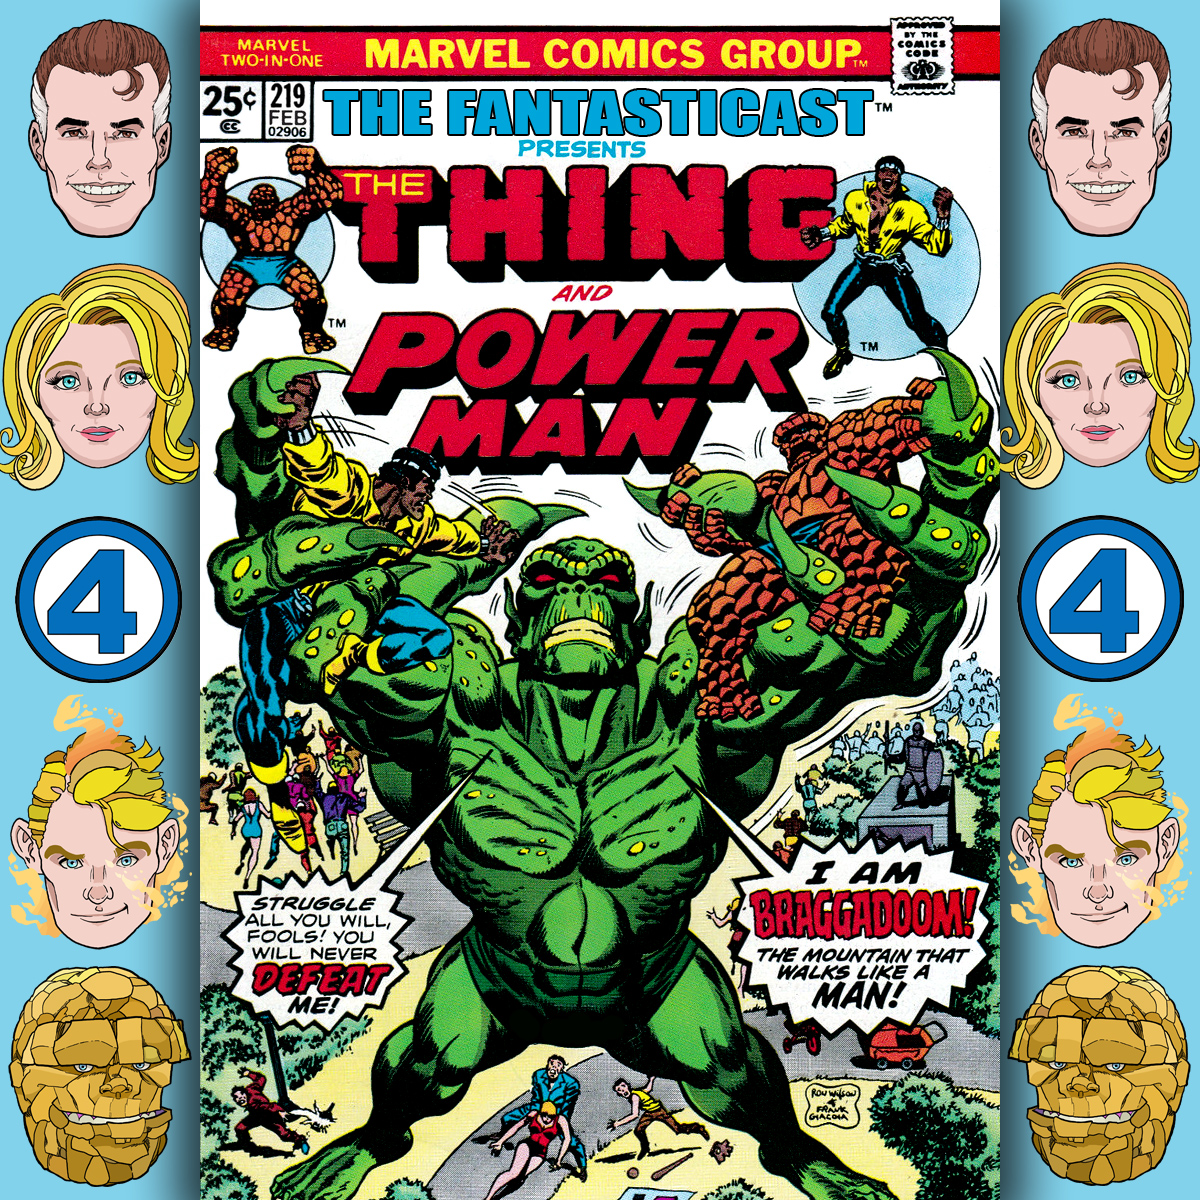 Episode 219: Marvel Two-in-One #13 - I Created Braggadoom, The Mountain That Walked Like A Man